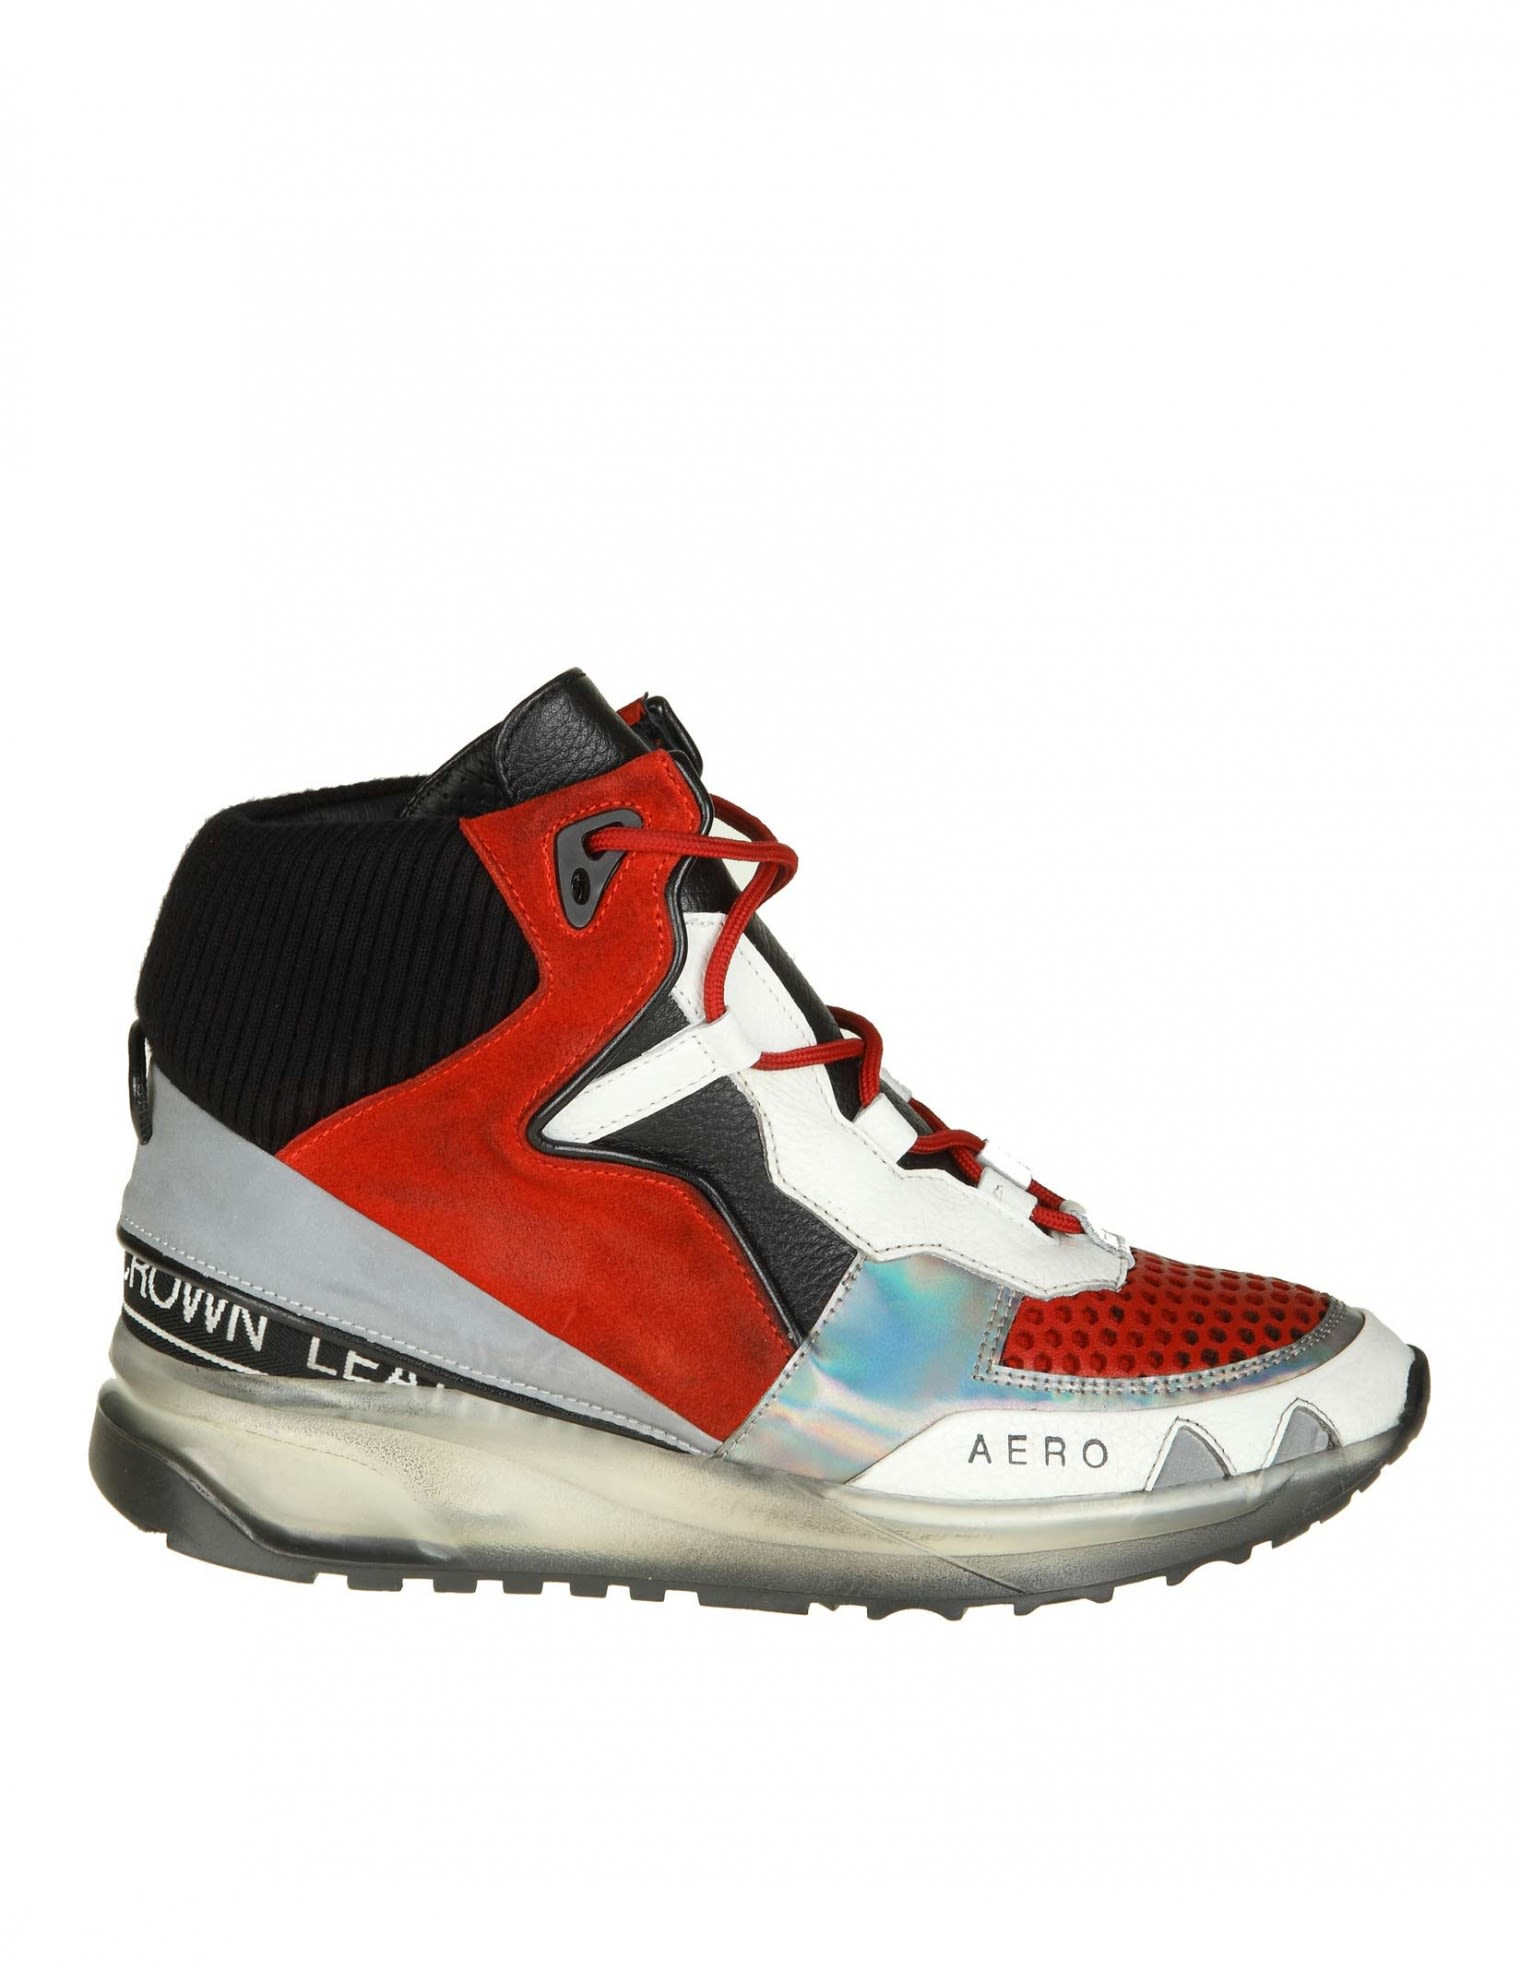 """Leather Crown """"aero"""" Sneakers In Red Leather With Black And White Deta"""